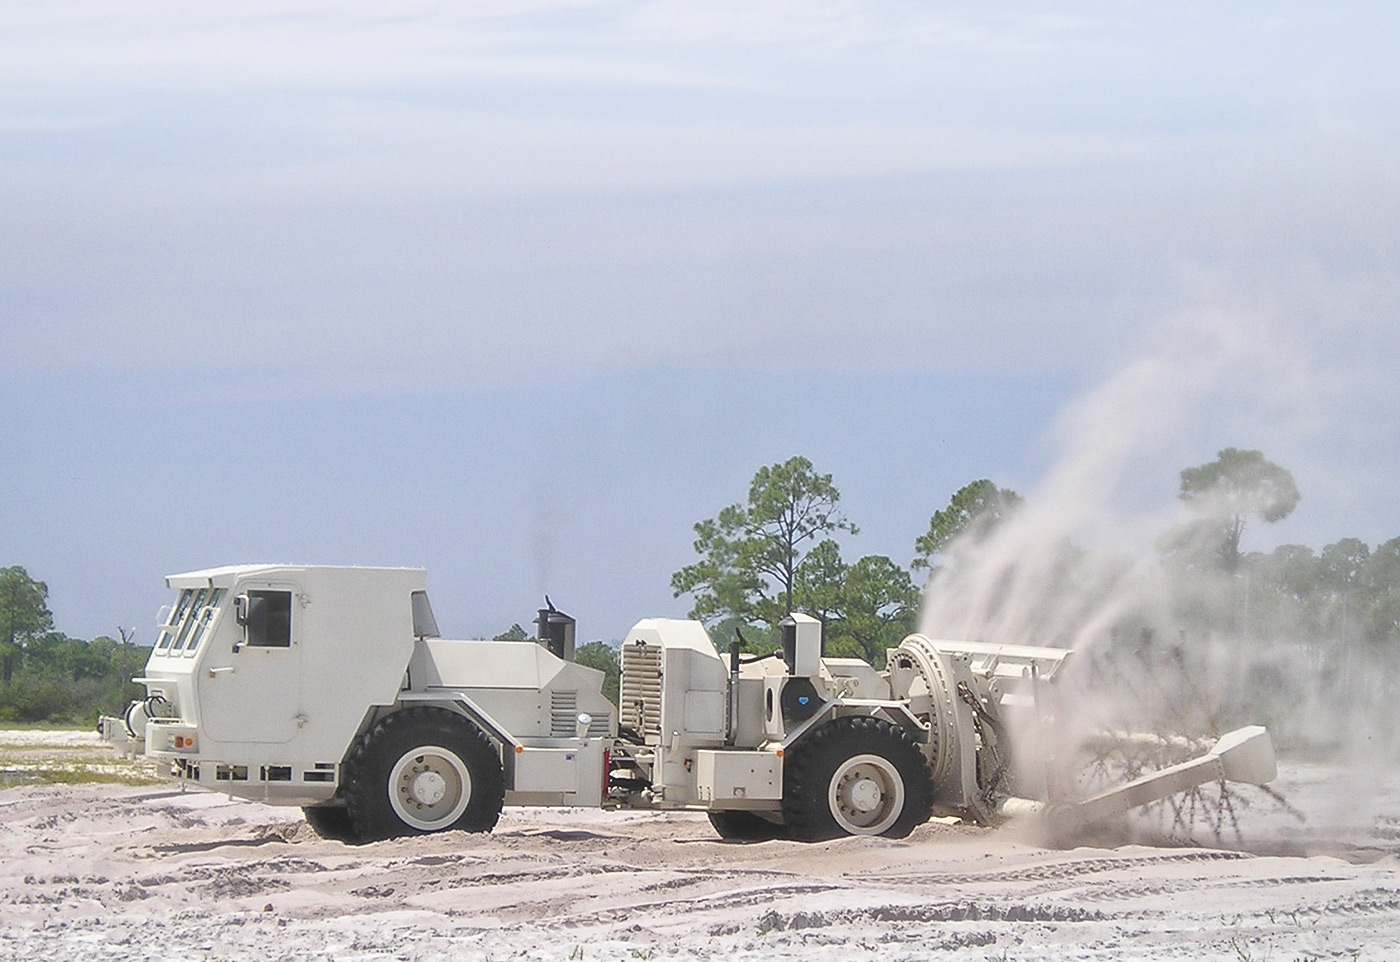 Hydrema 910MCV2-AMCS Mine clearing vehicle clearing mines